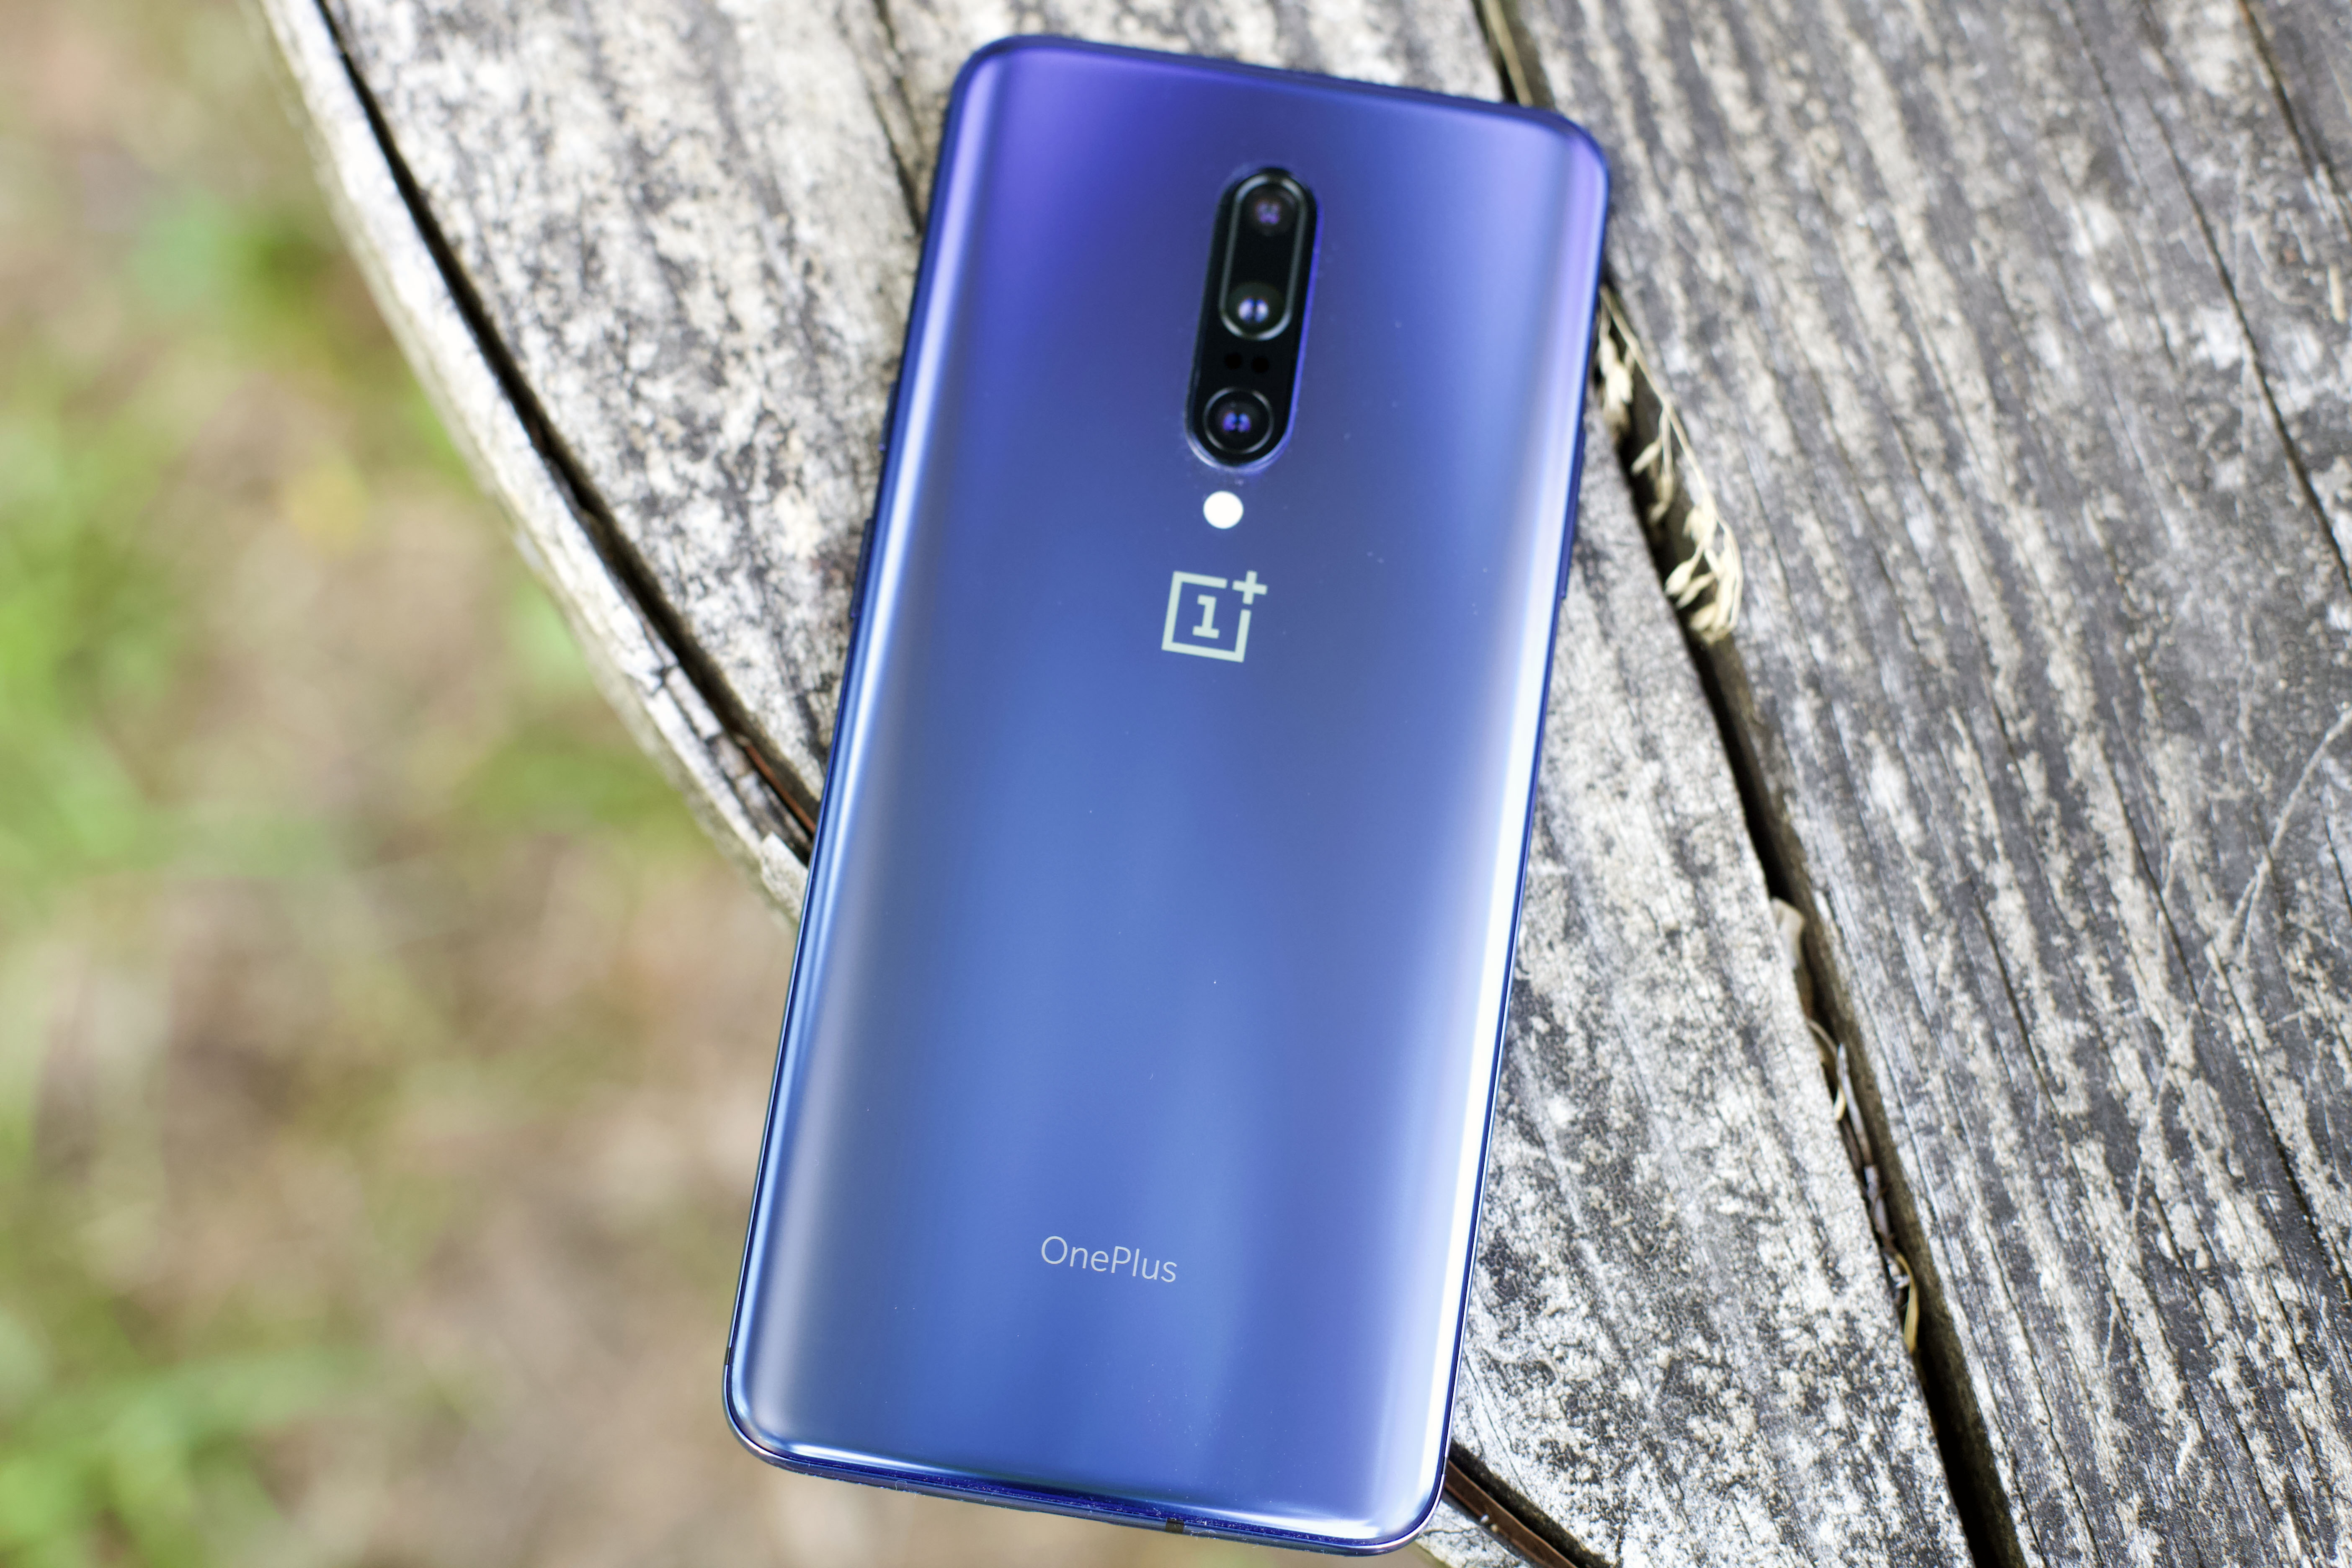 OnePlus 7 Pro review: We lived with the flagship for three